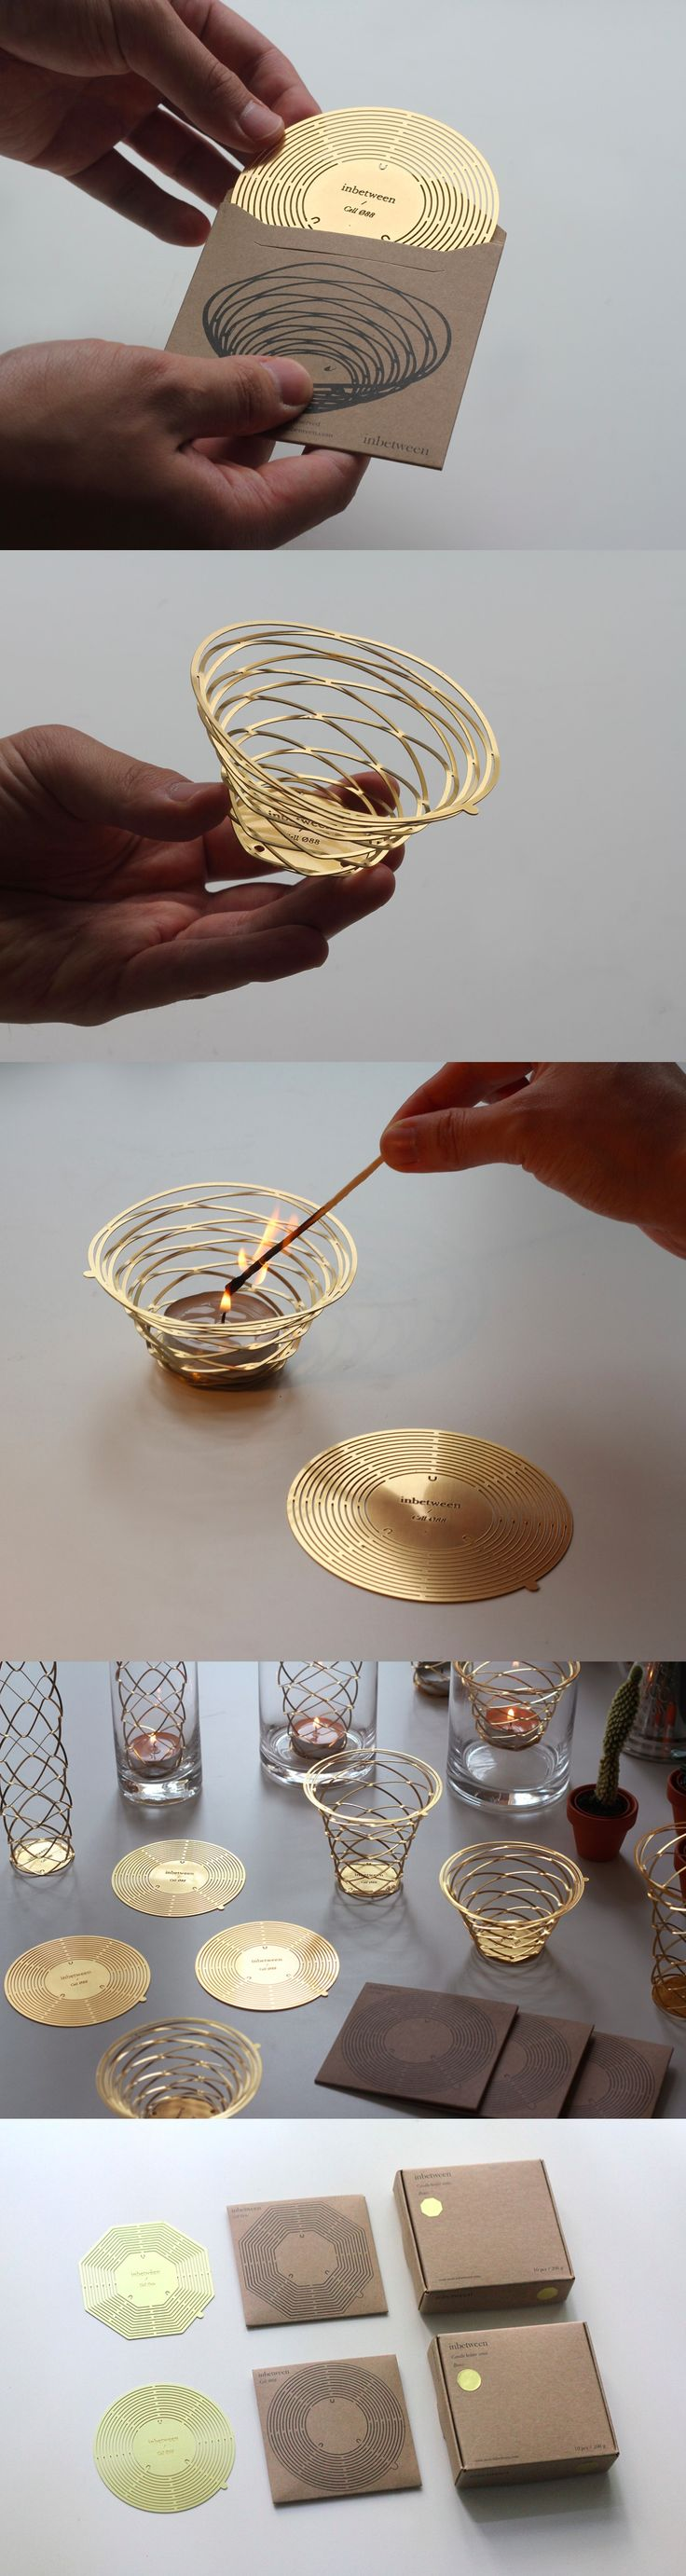 Brass pop up candle holder by studio inbetween | adamchristopherdesign.co.uk